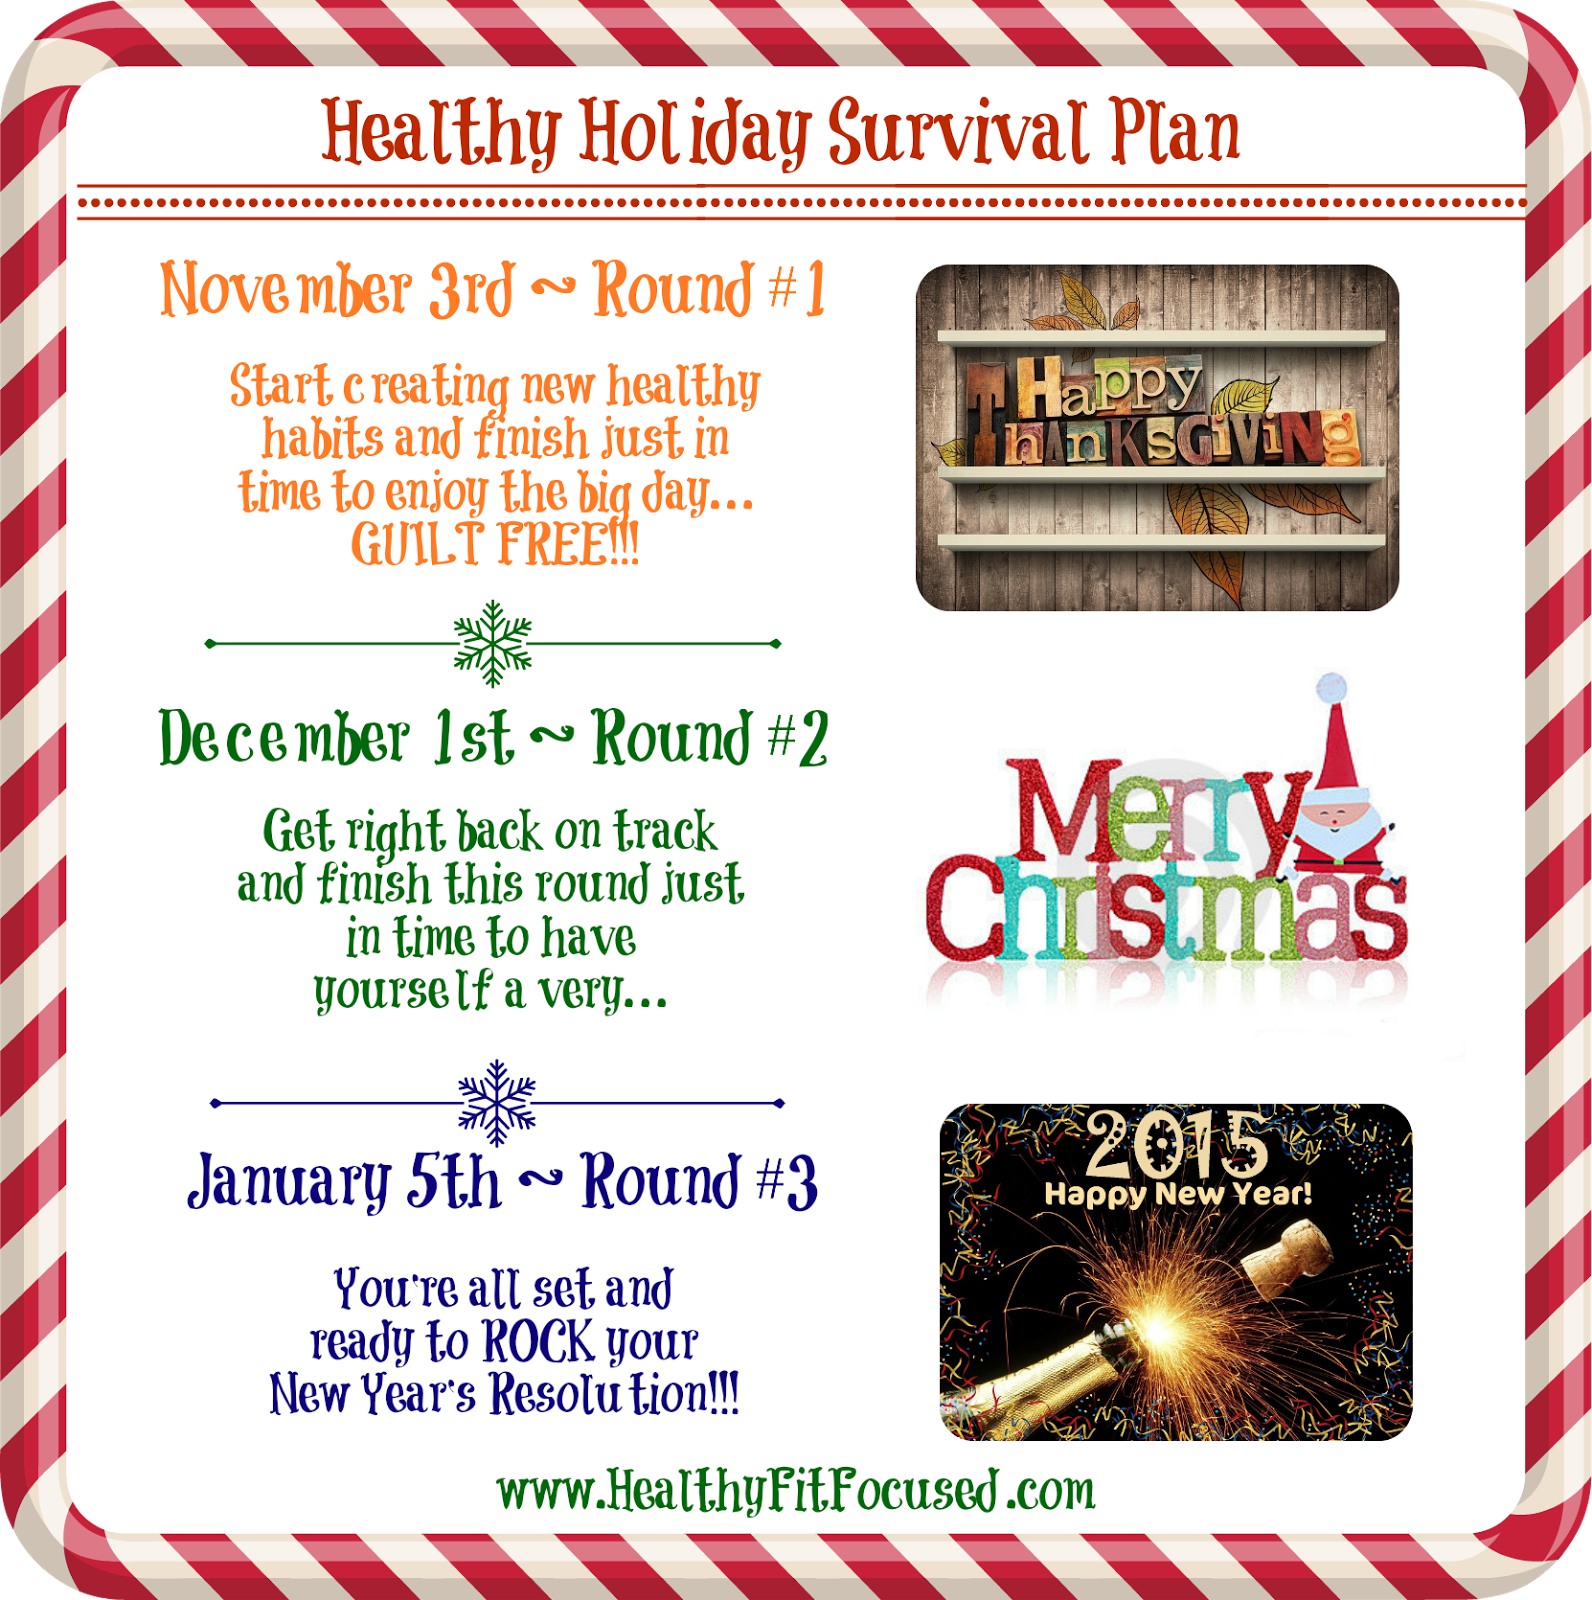 Holiday Survival Guide, Accountability group, www.HealthyFitFocused.com